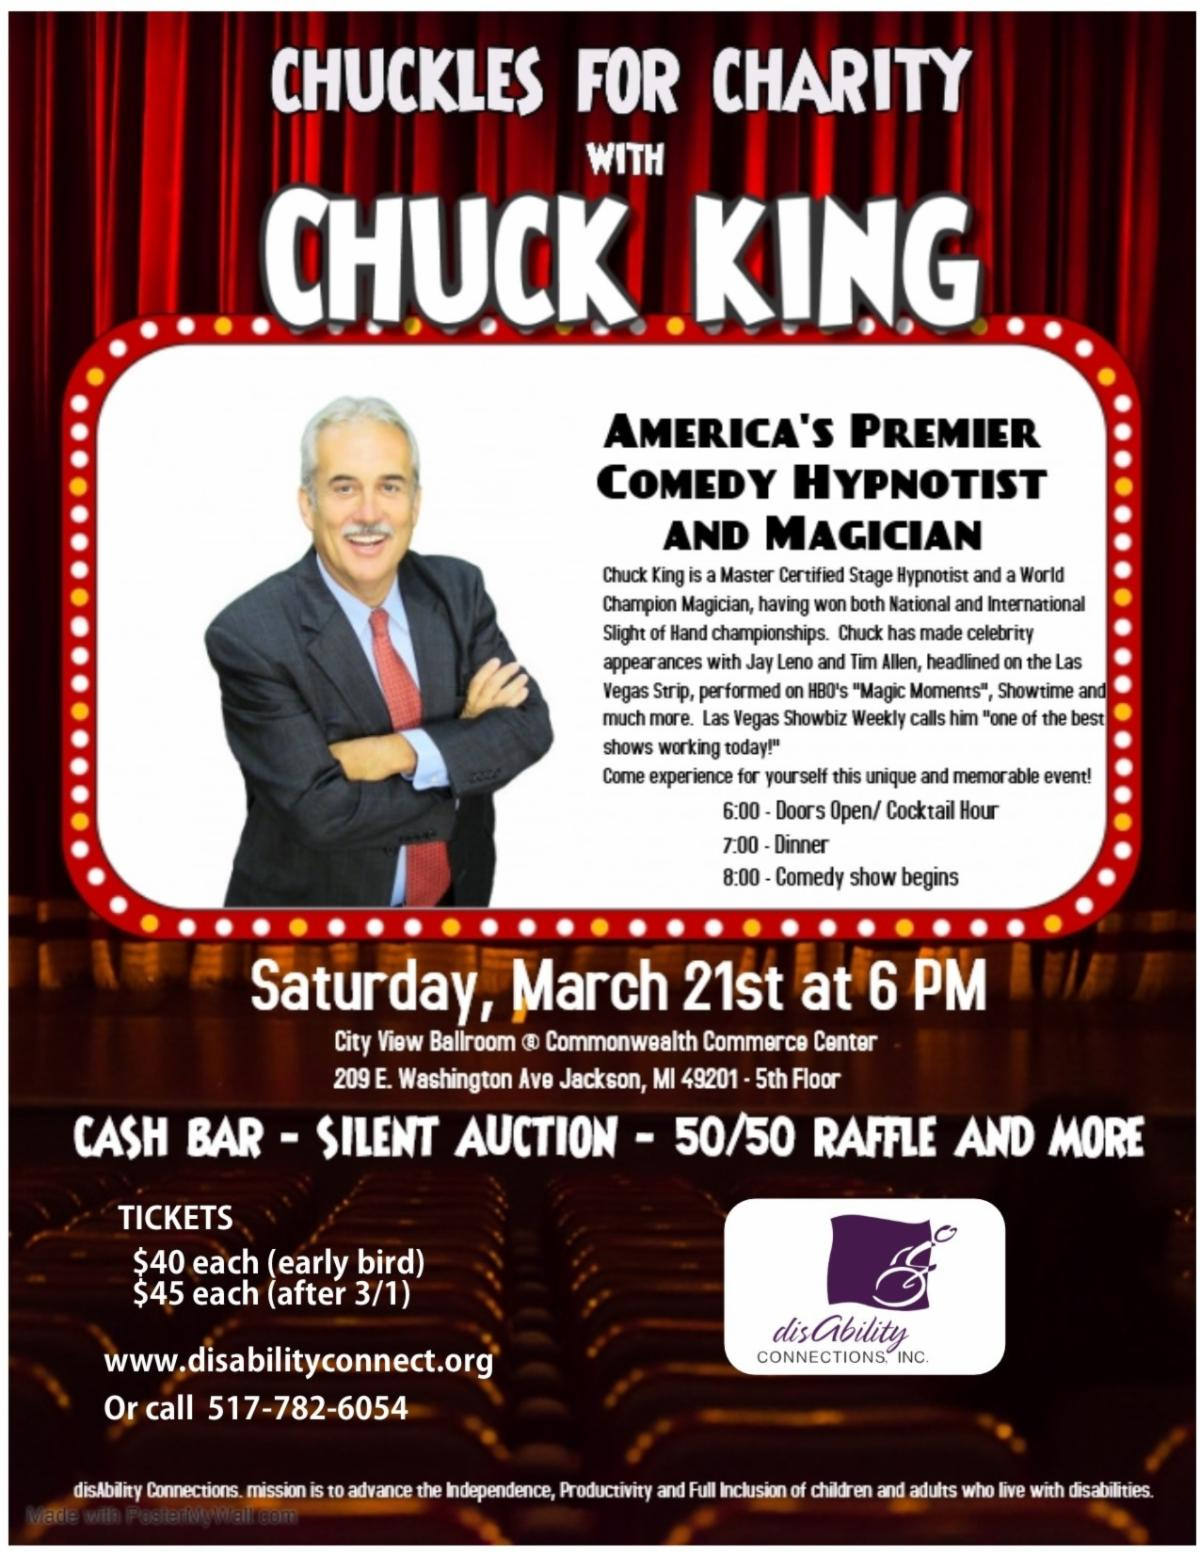 Saturday, March 21st Chuck King a comedian, magician, and hypnotist will perform at the 2020 Chuckles For Charity.      Call 517-782-6054 for tickets.  Early bird special of $40 until March 1, $45 after then.